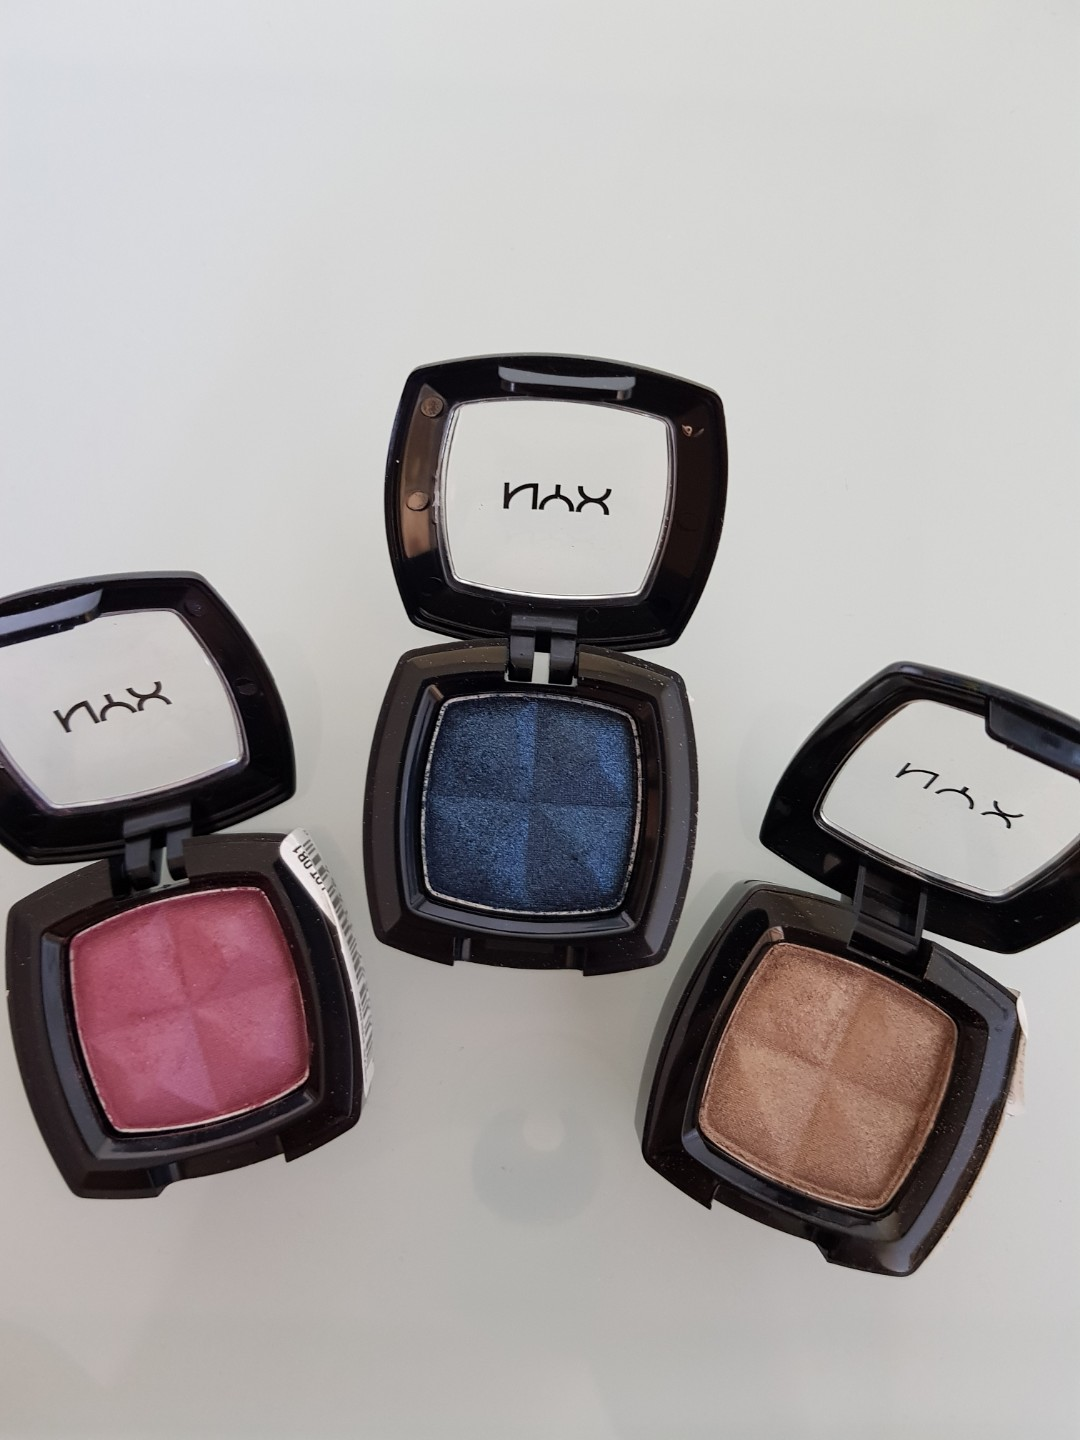 3 nyx single eyeshadows